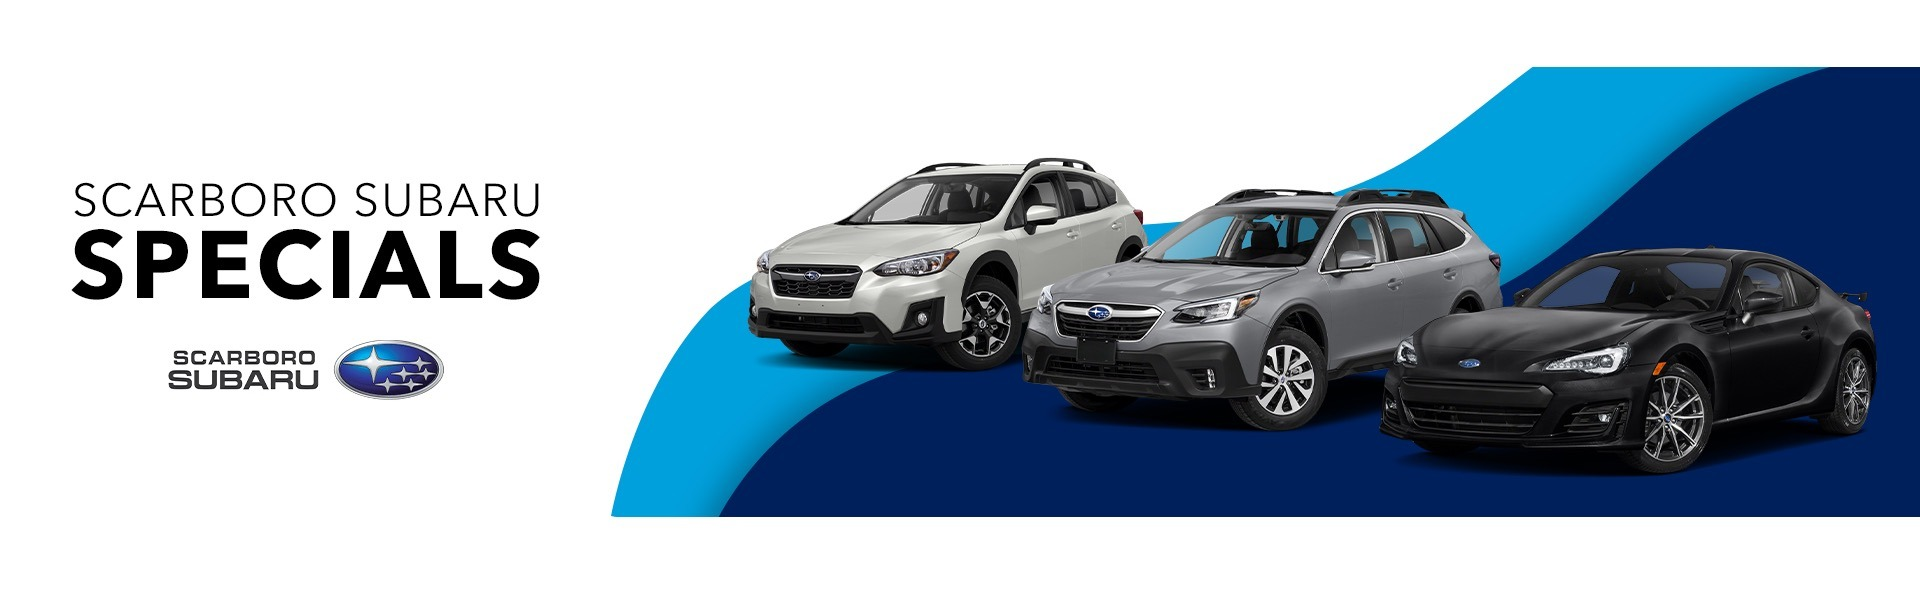 Scarboro Subaru Promotions Page Banner